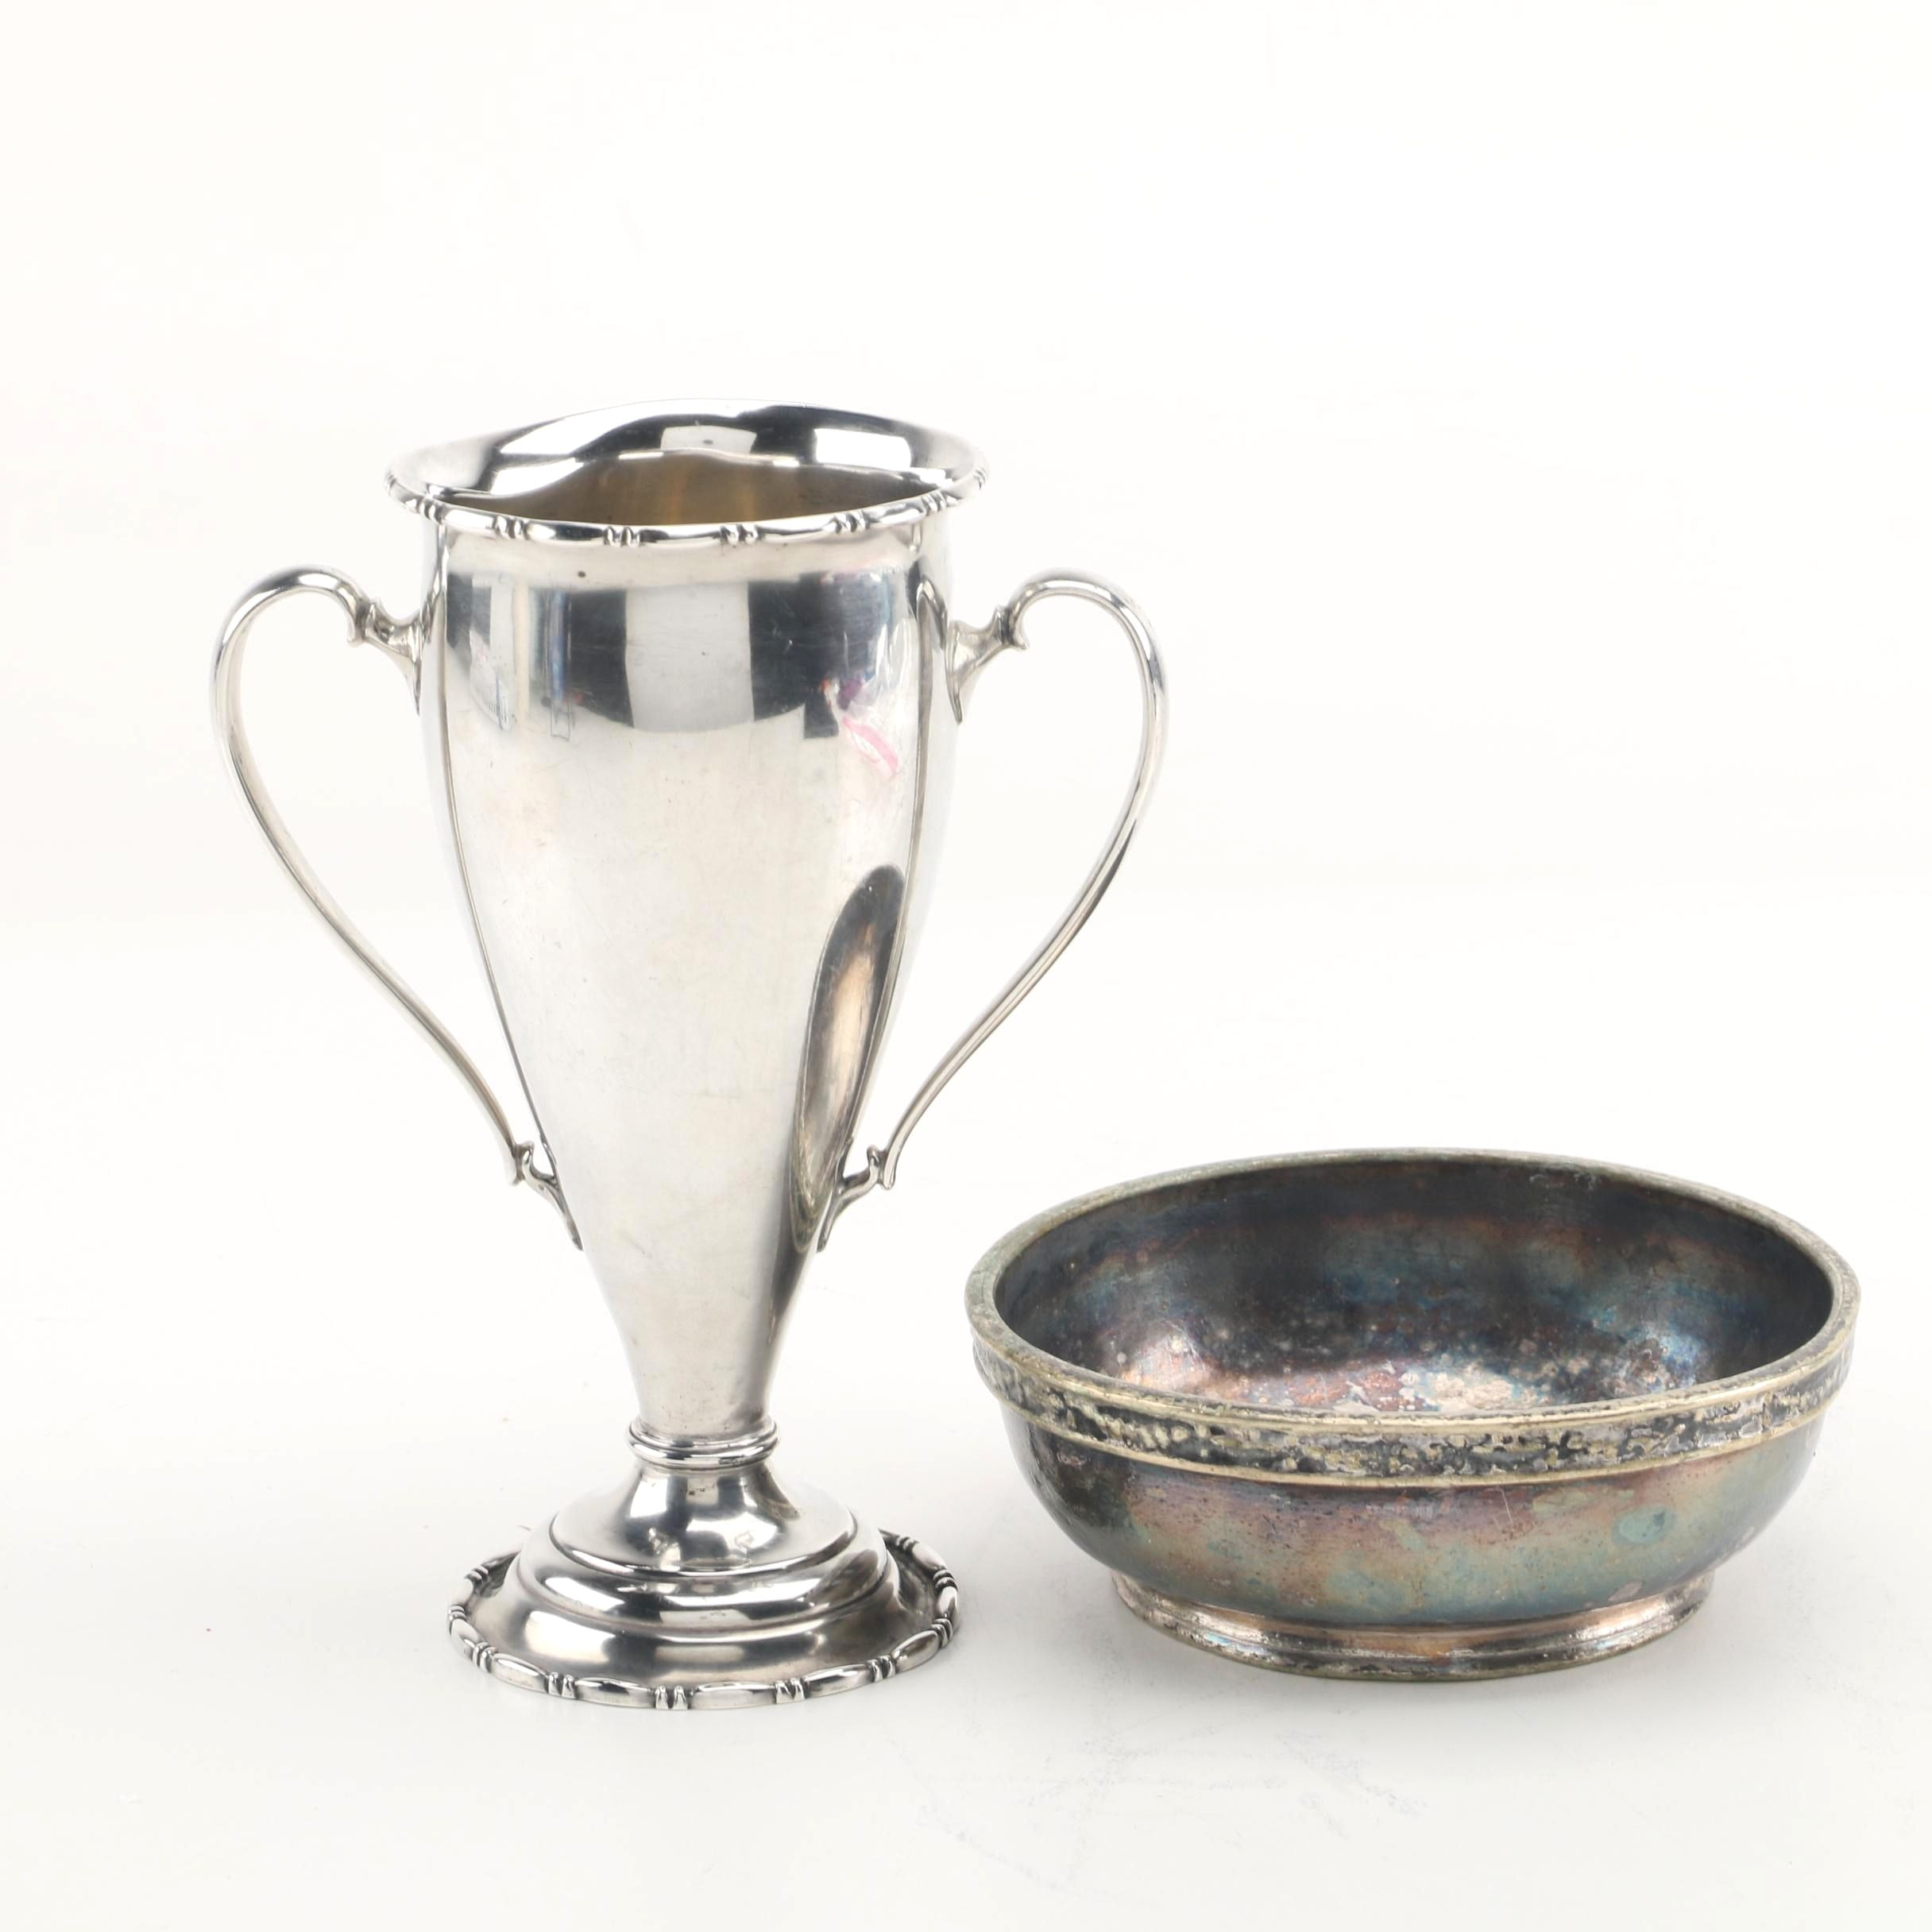 Reed & Barton Sterling Silver Trophy Cup with Silver Plate Hotels Statler Bowl